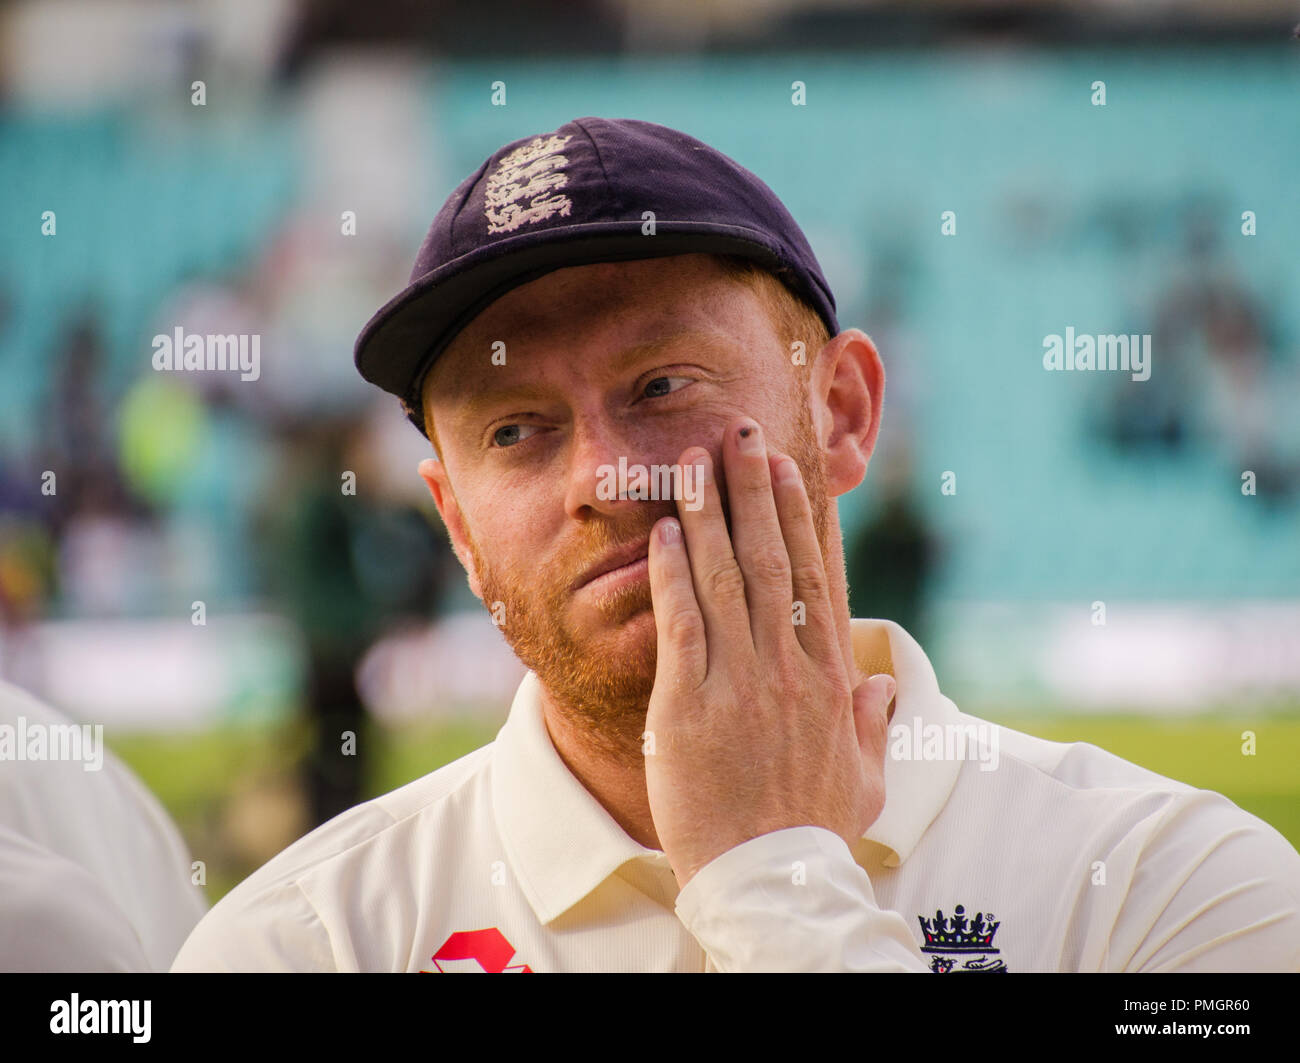 Kia Oval, London, UK. 11th Sept 2018. Specsavers England v India Test Match Cricket, 5th test, day 5; Jonny Bairstow - England's wicket keeper after. - Stock Image